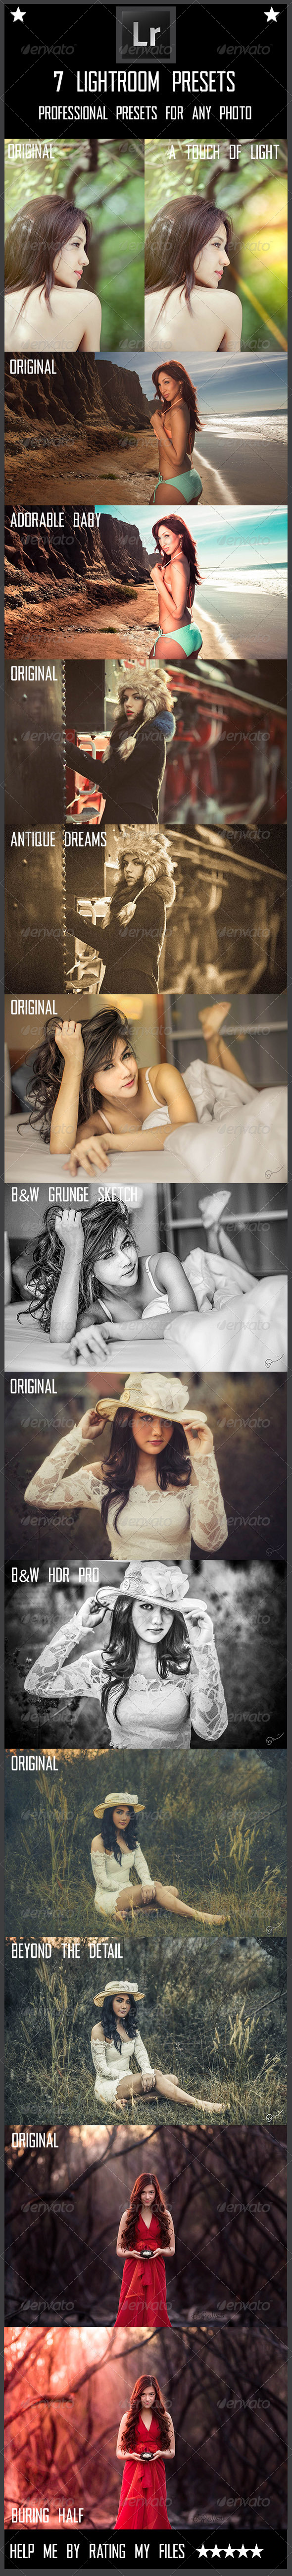 GraphicRiver 7 Lightroom Presets 8566073